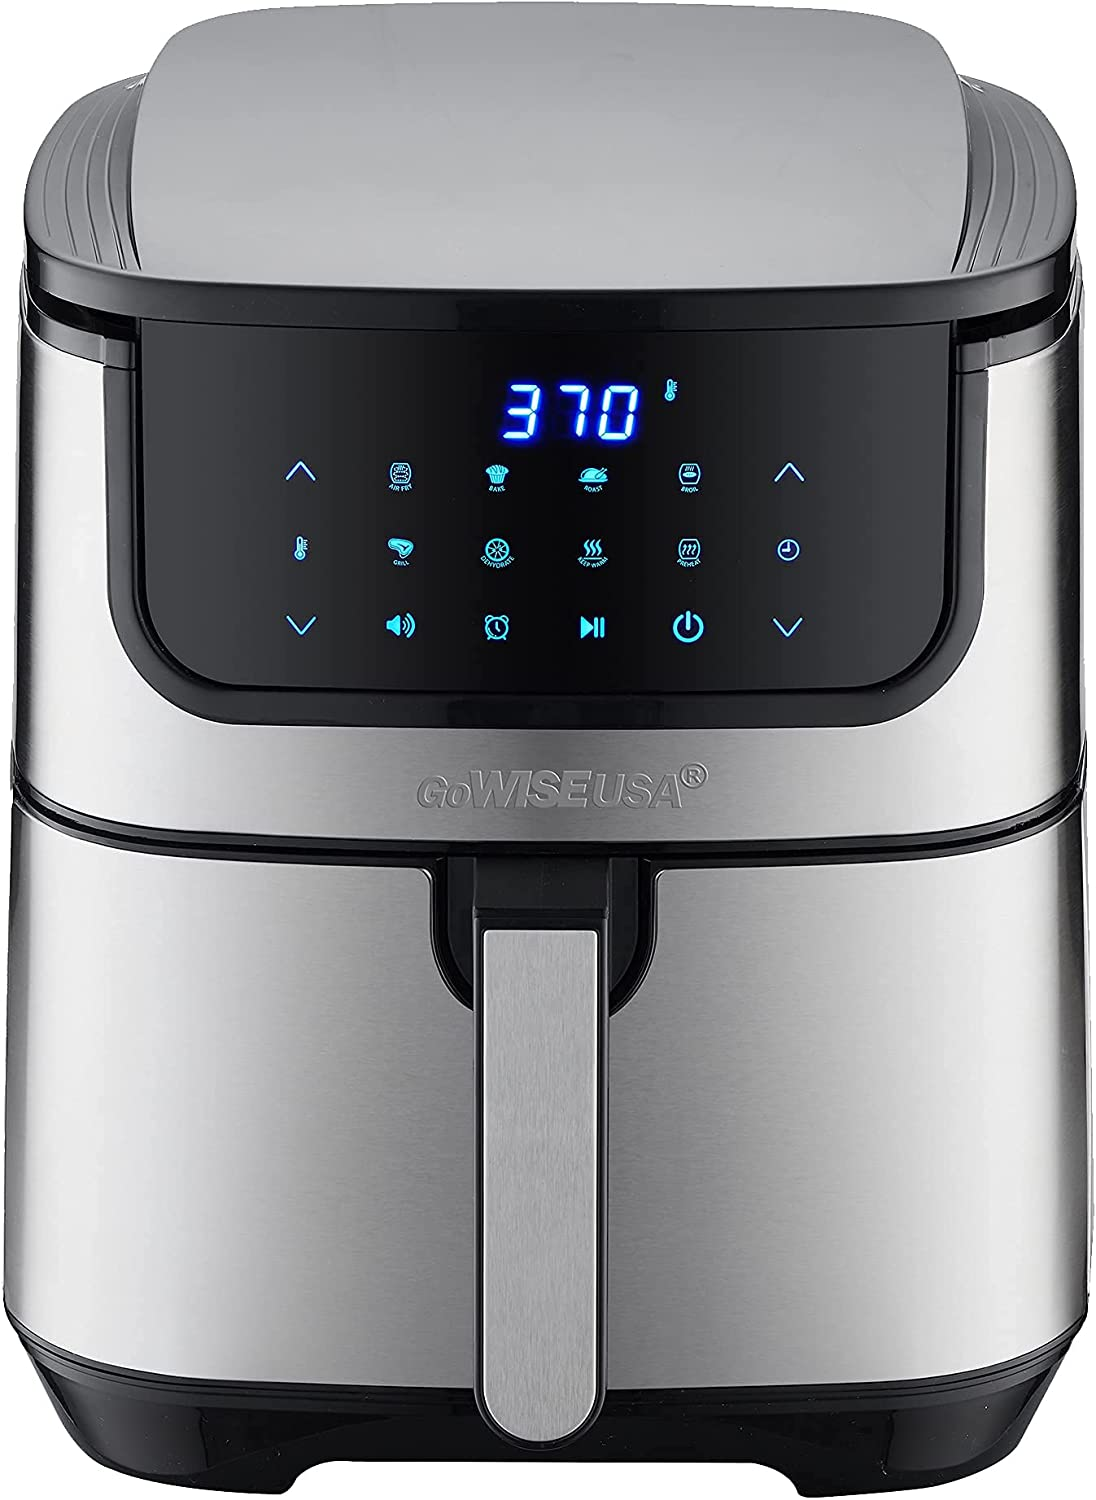 GoWISE USA 7-Quart Air Fryer & Dehydrator Max Steel XL- with Touchscreen Display with Stackable Dehydrating Racks with Preheat & Mute Functions + 100 Recipes (Stainless Steel) (Renewed)